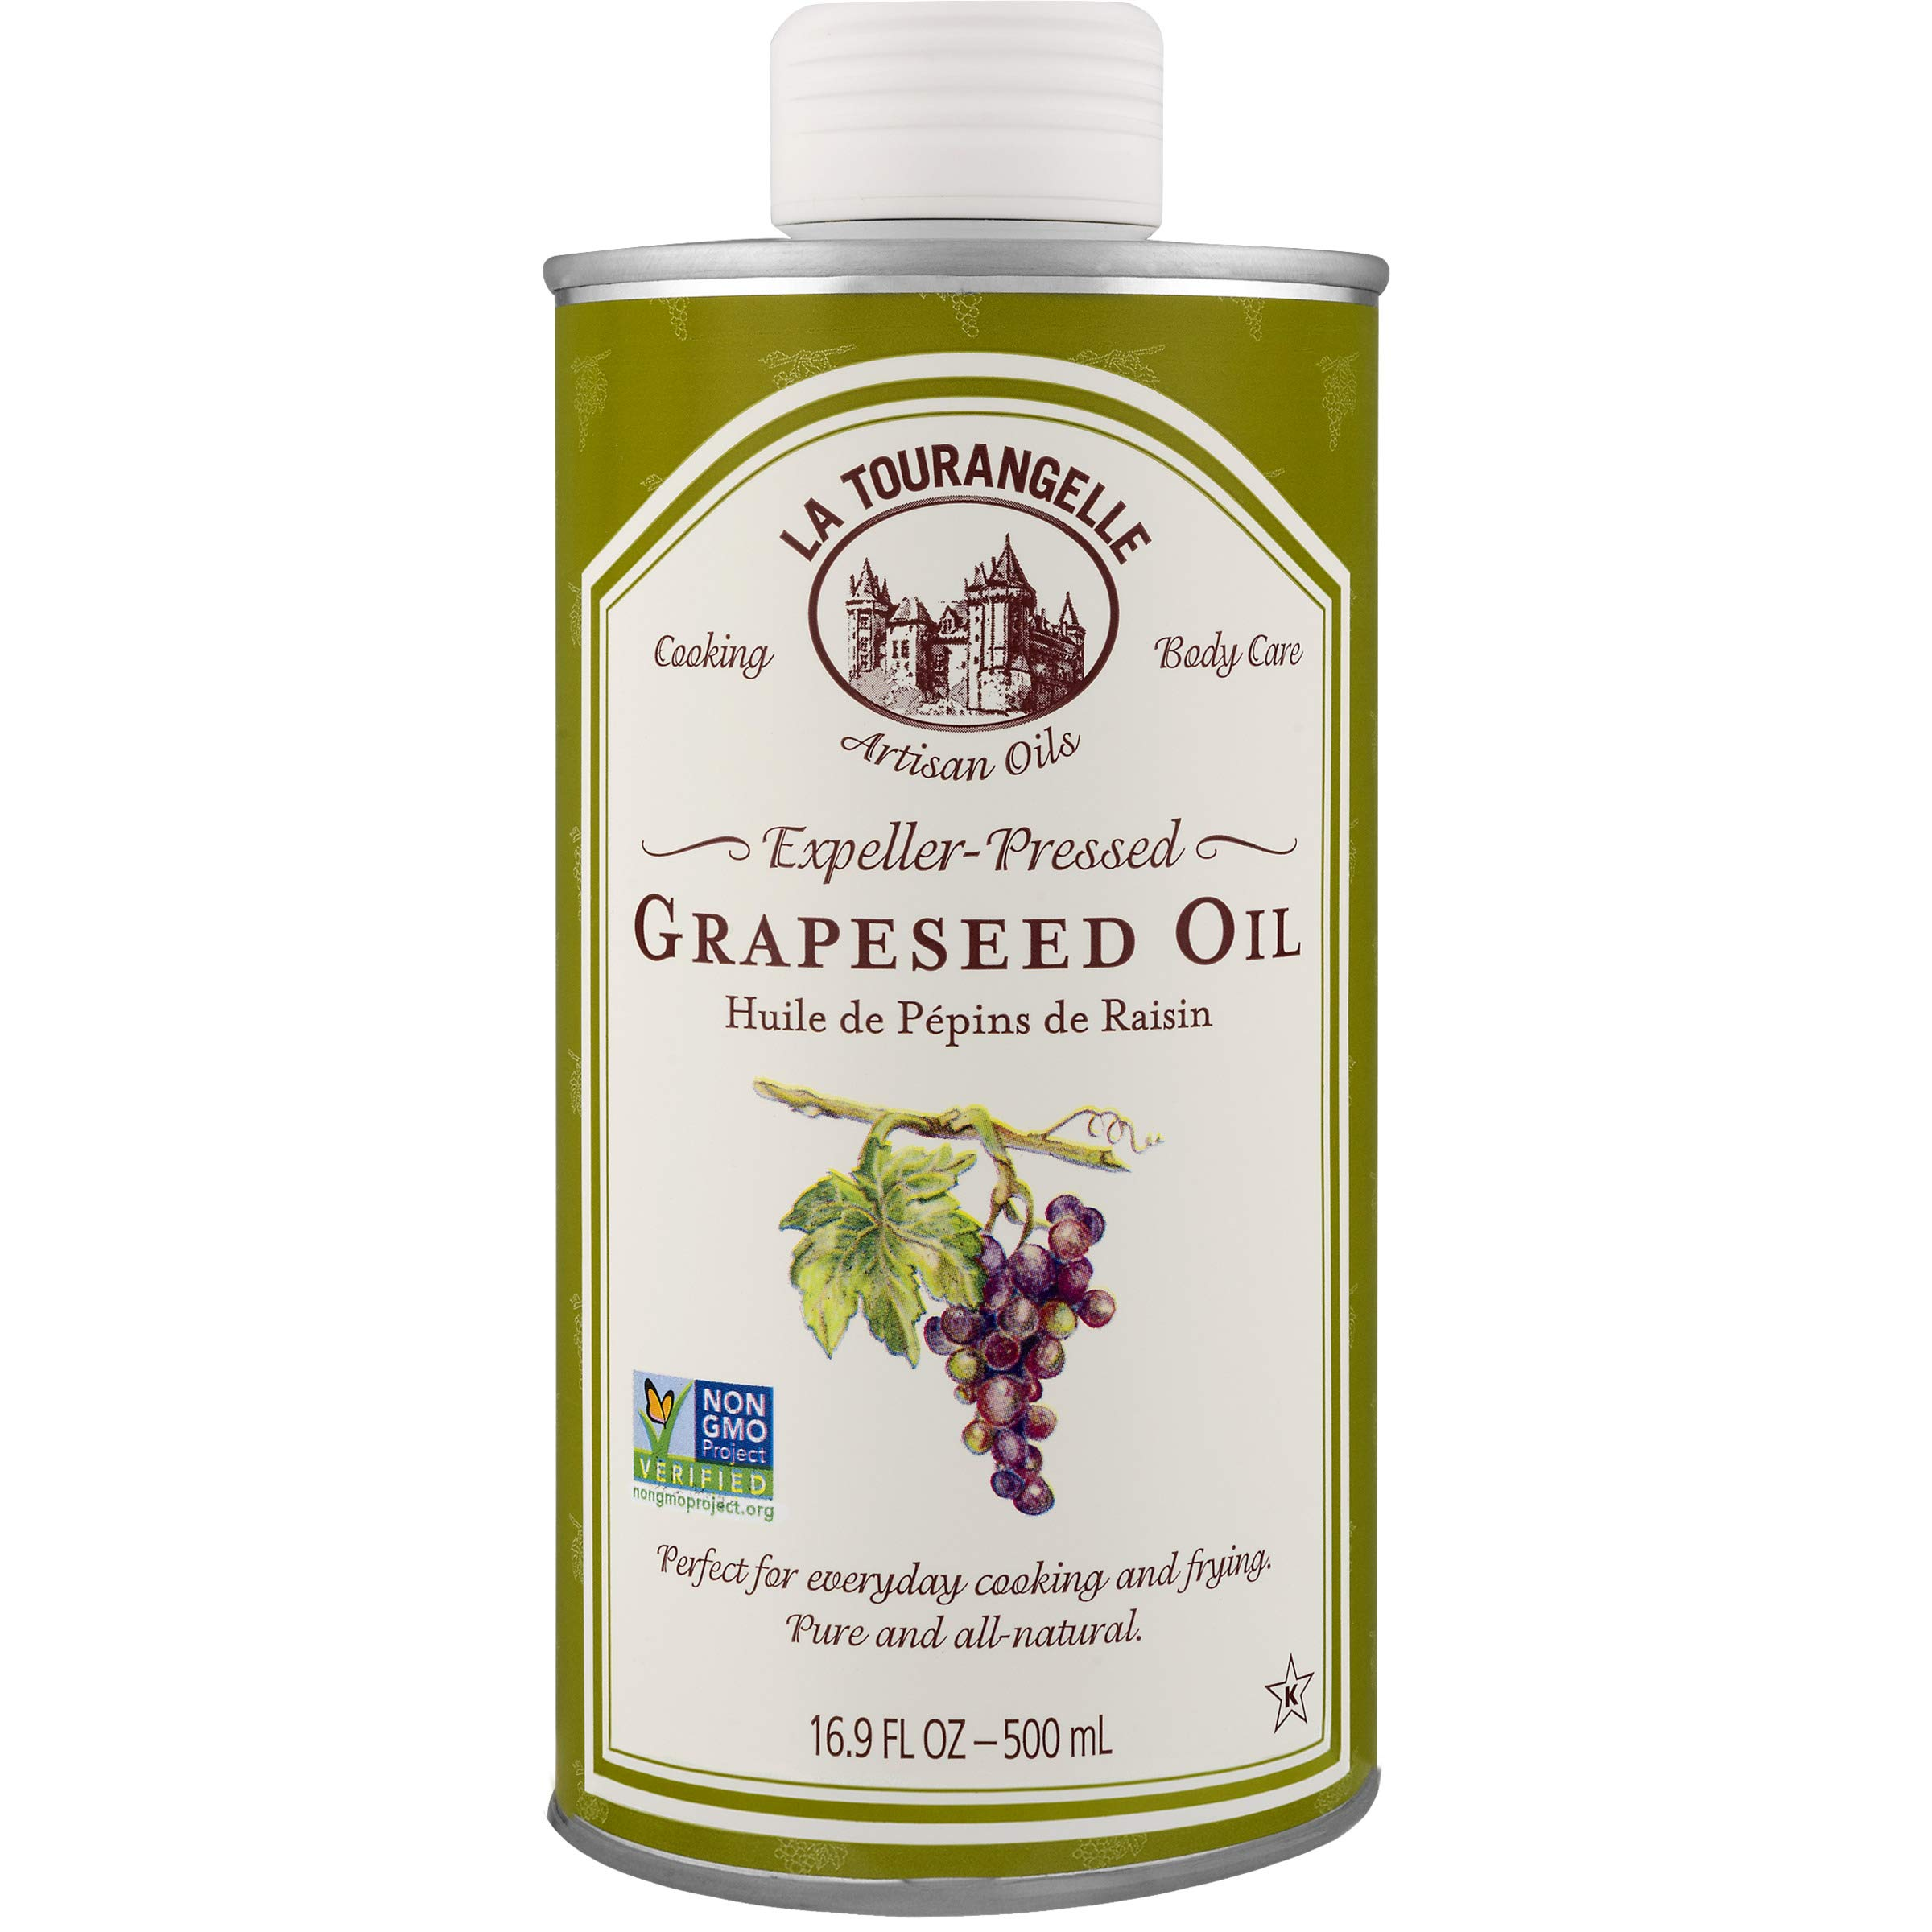 La Tourangelle Grapeseed Oil 16.9 Fl Oz, All-Natural, Artisanal, Great for Cooking, Sauteing, Marinating, and Dressing by La Tourangelle